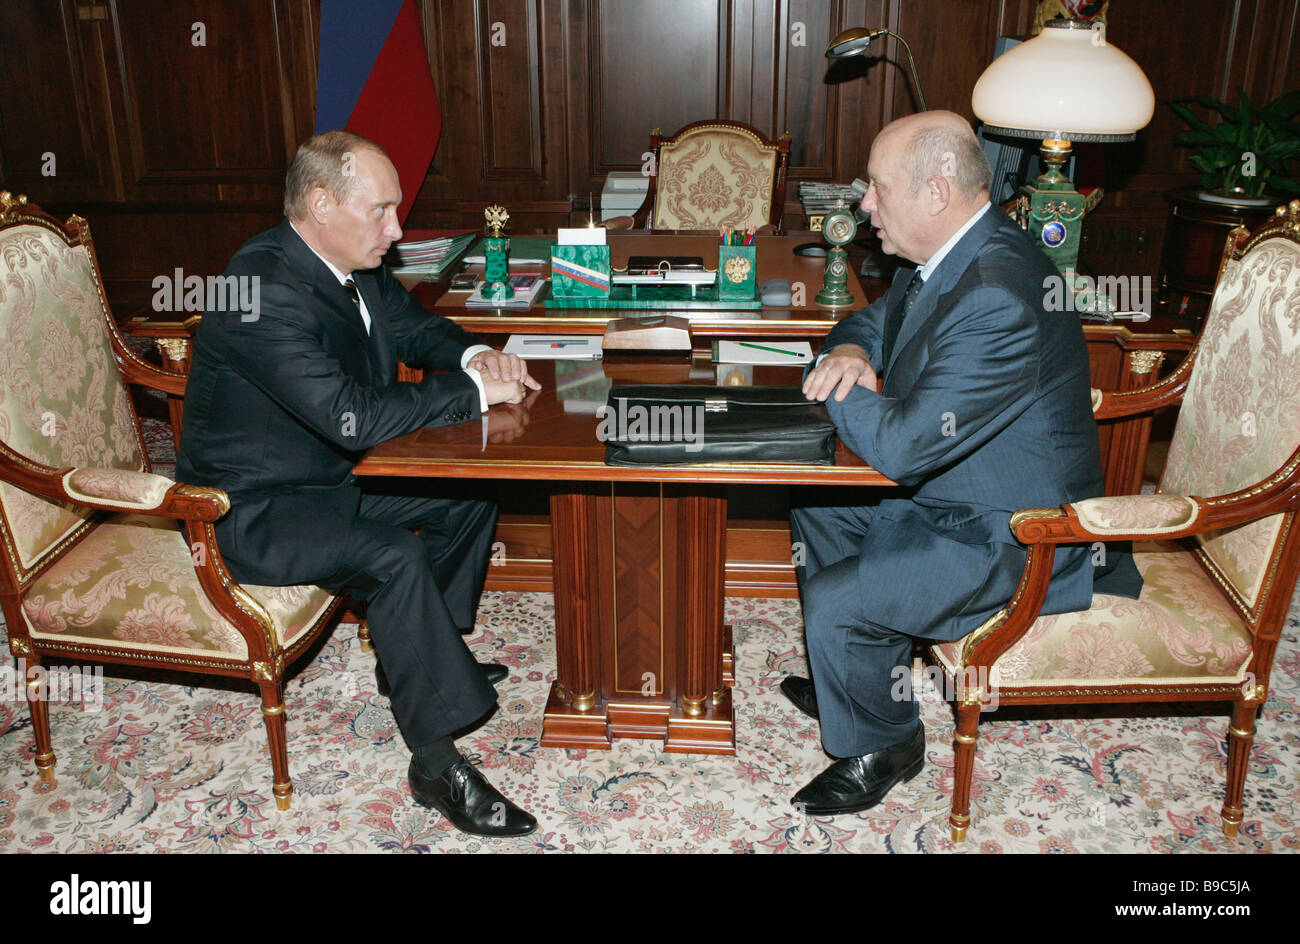 Russian President Vladimir Putin and Prime Minister of the Russian Federation Mikhail Fradkov left to right meeting - Stock Image